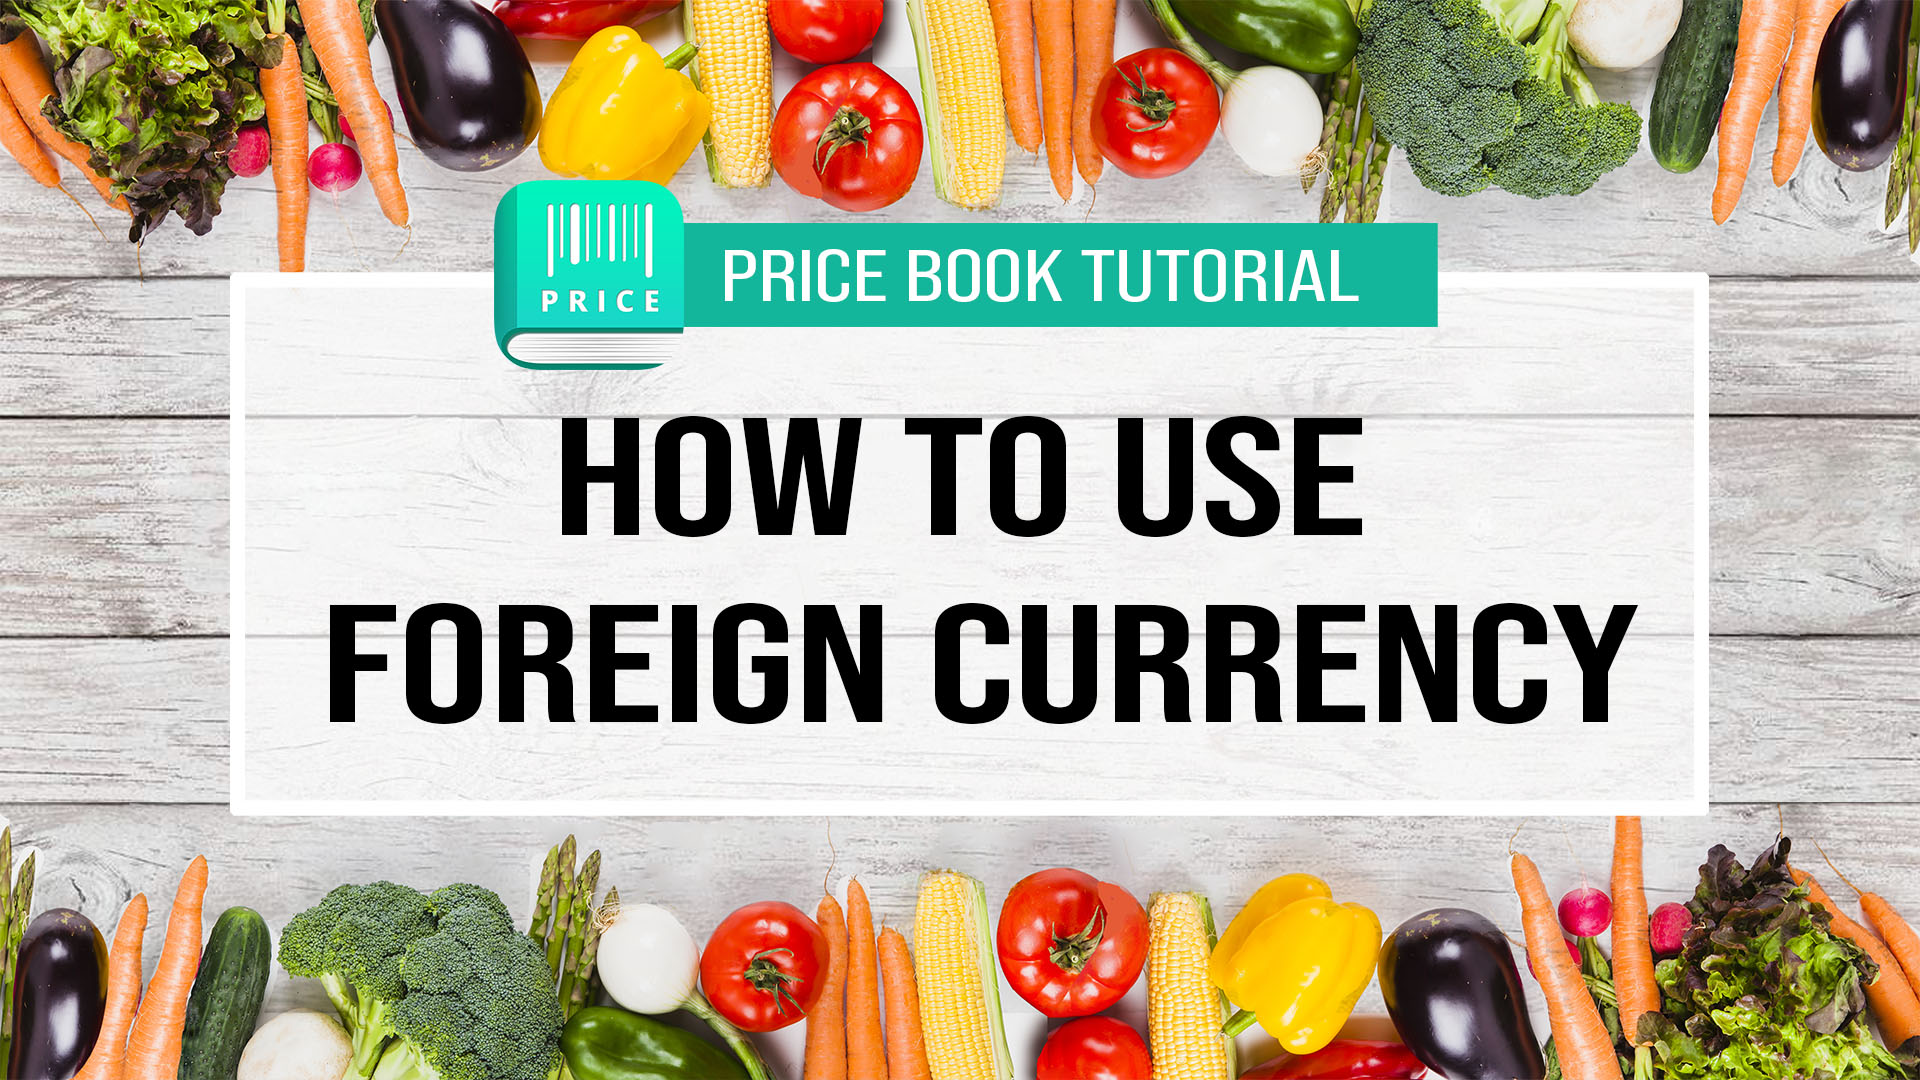 Price Book How to use foreign currency tutorial